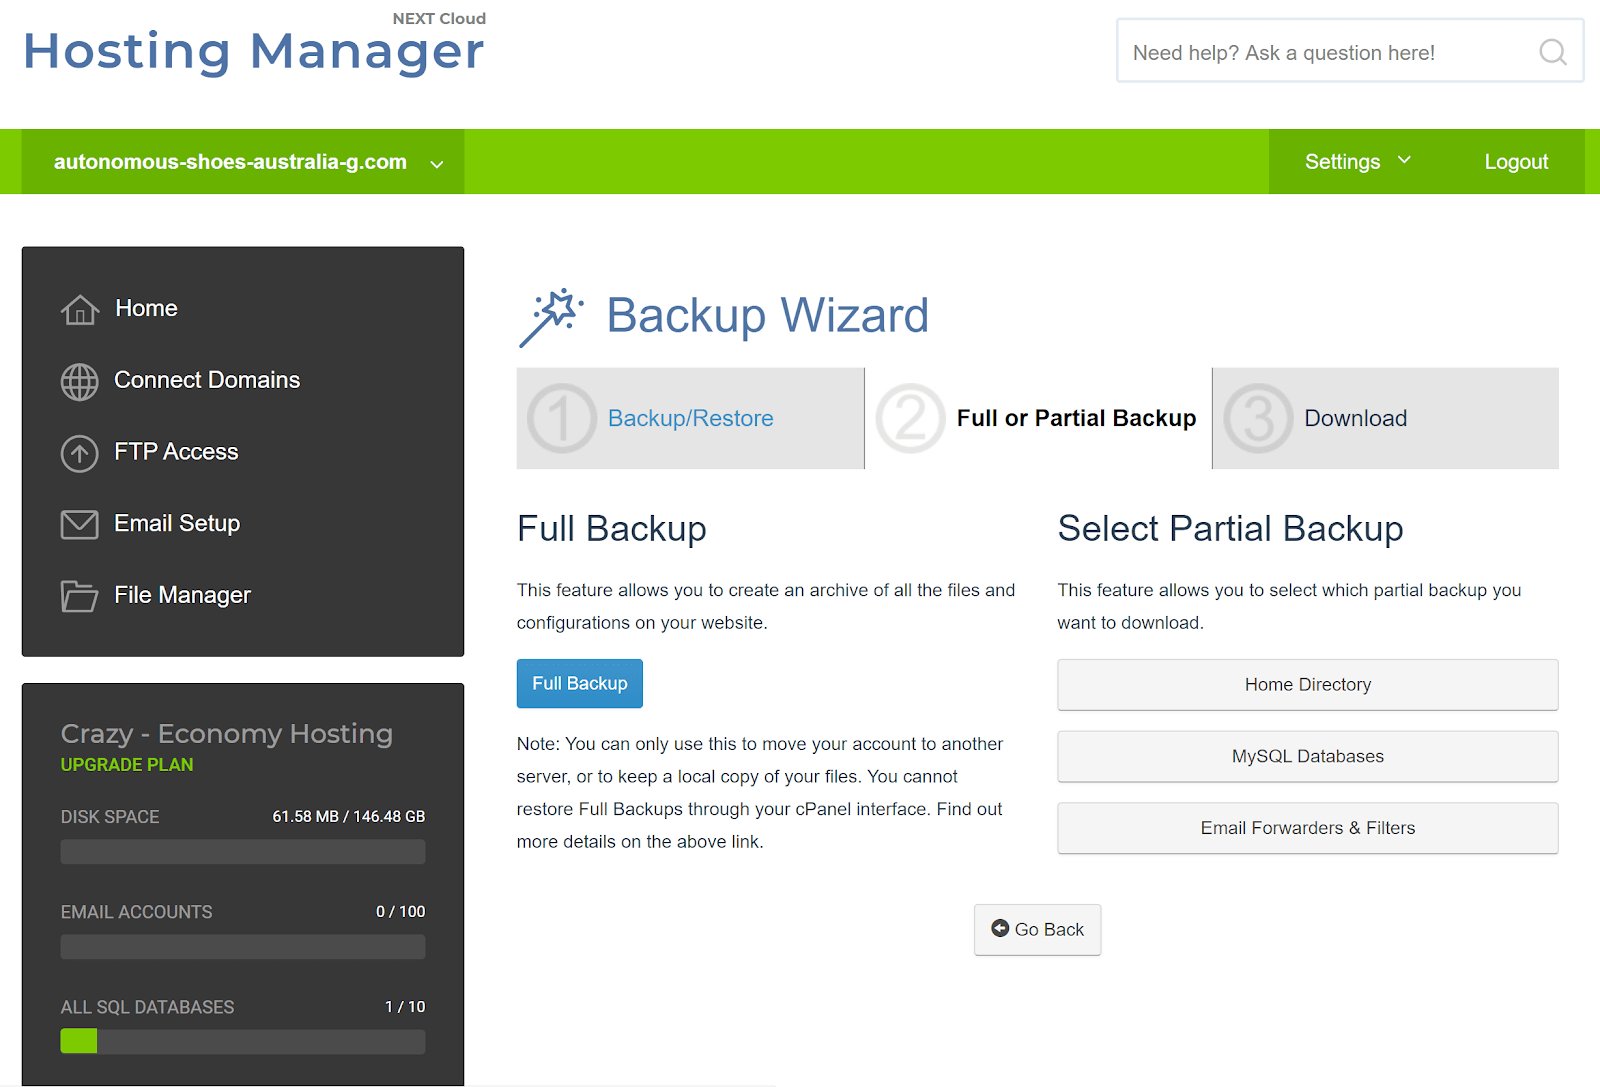 the CrazyDomains backup wizard